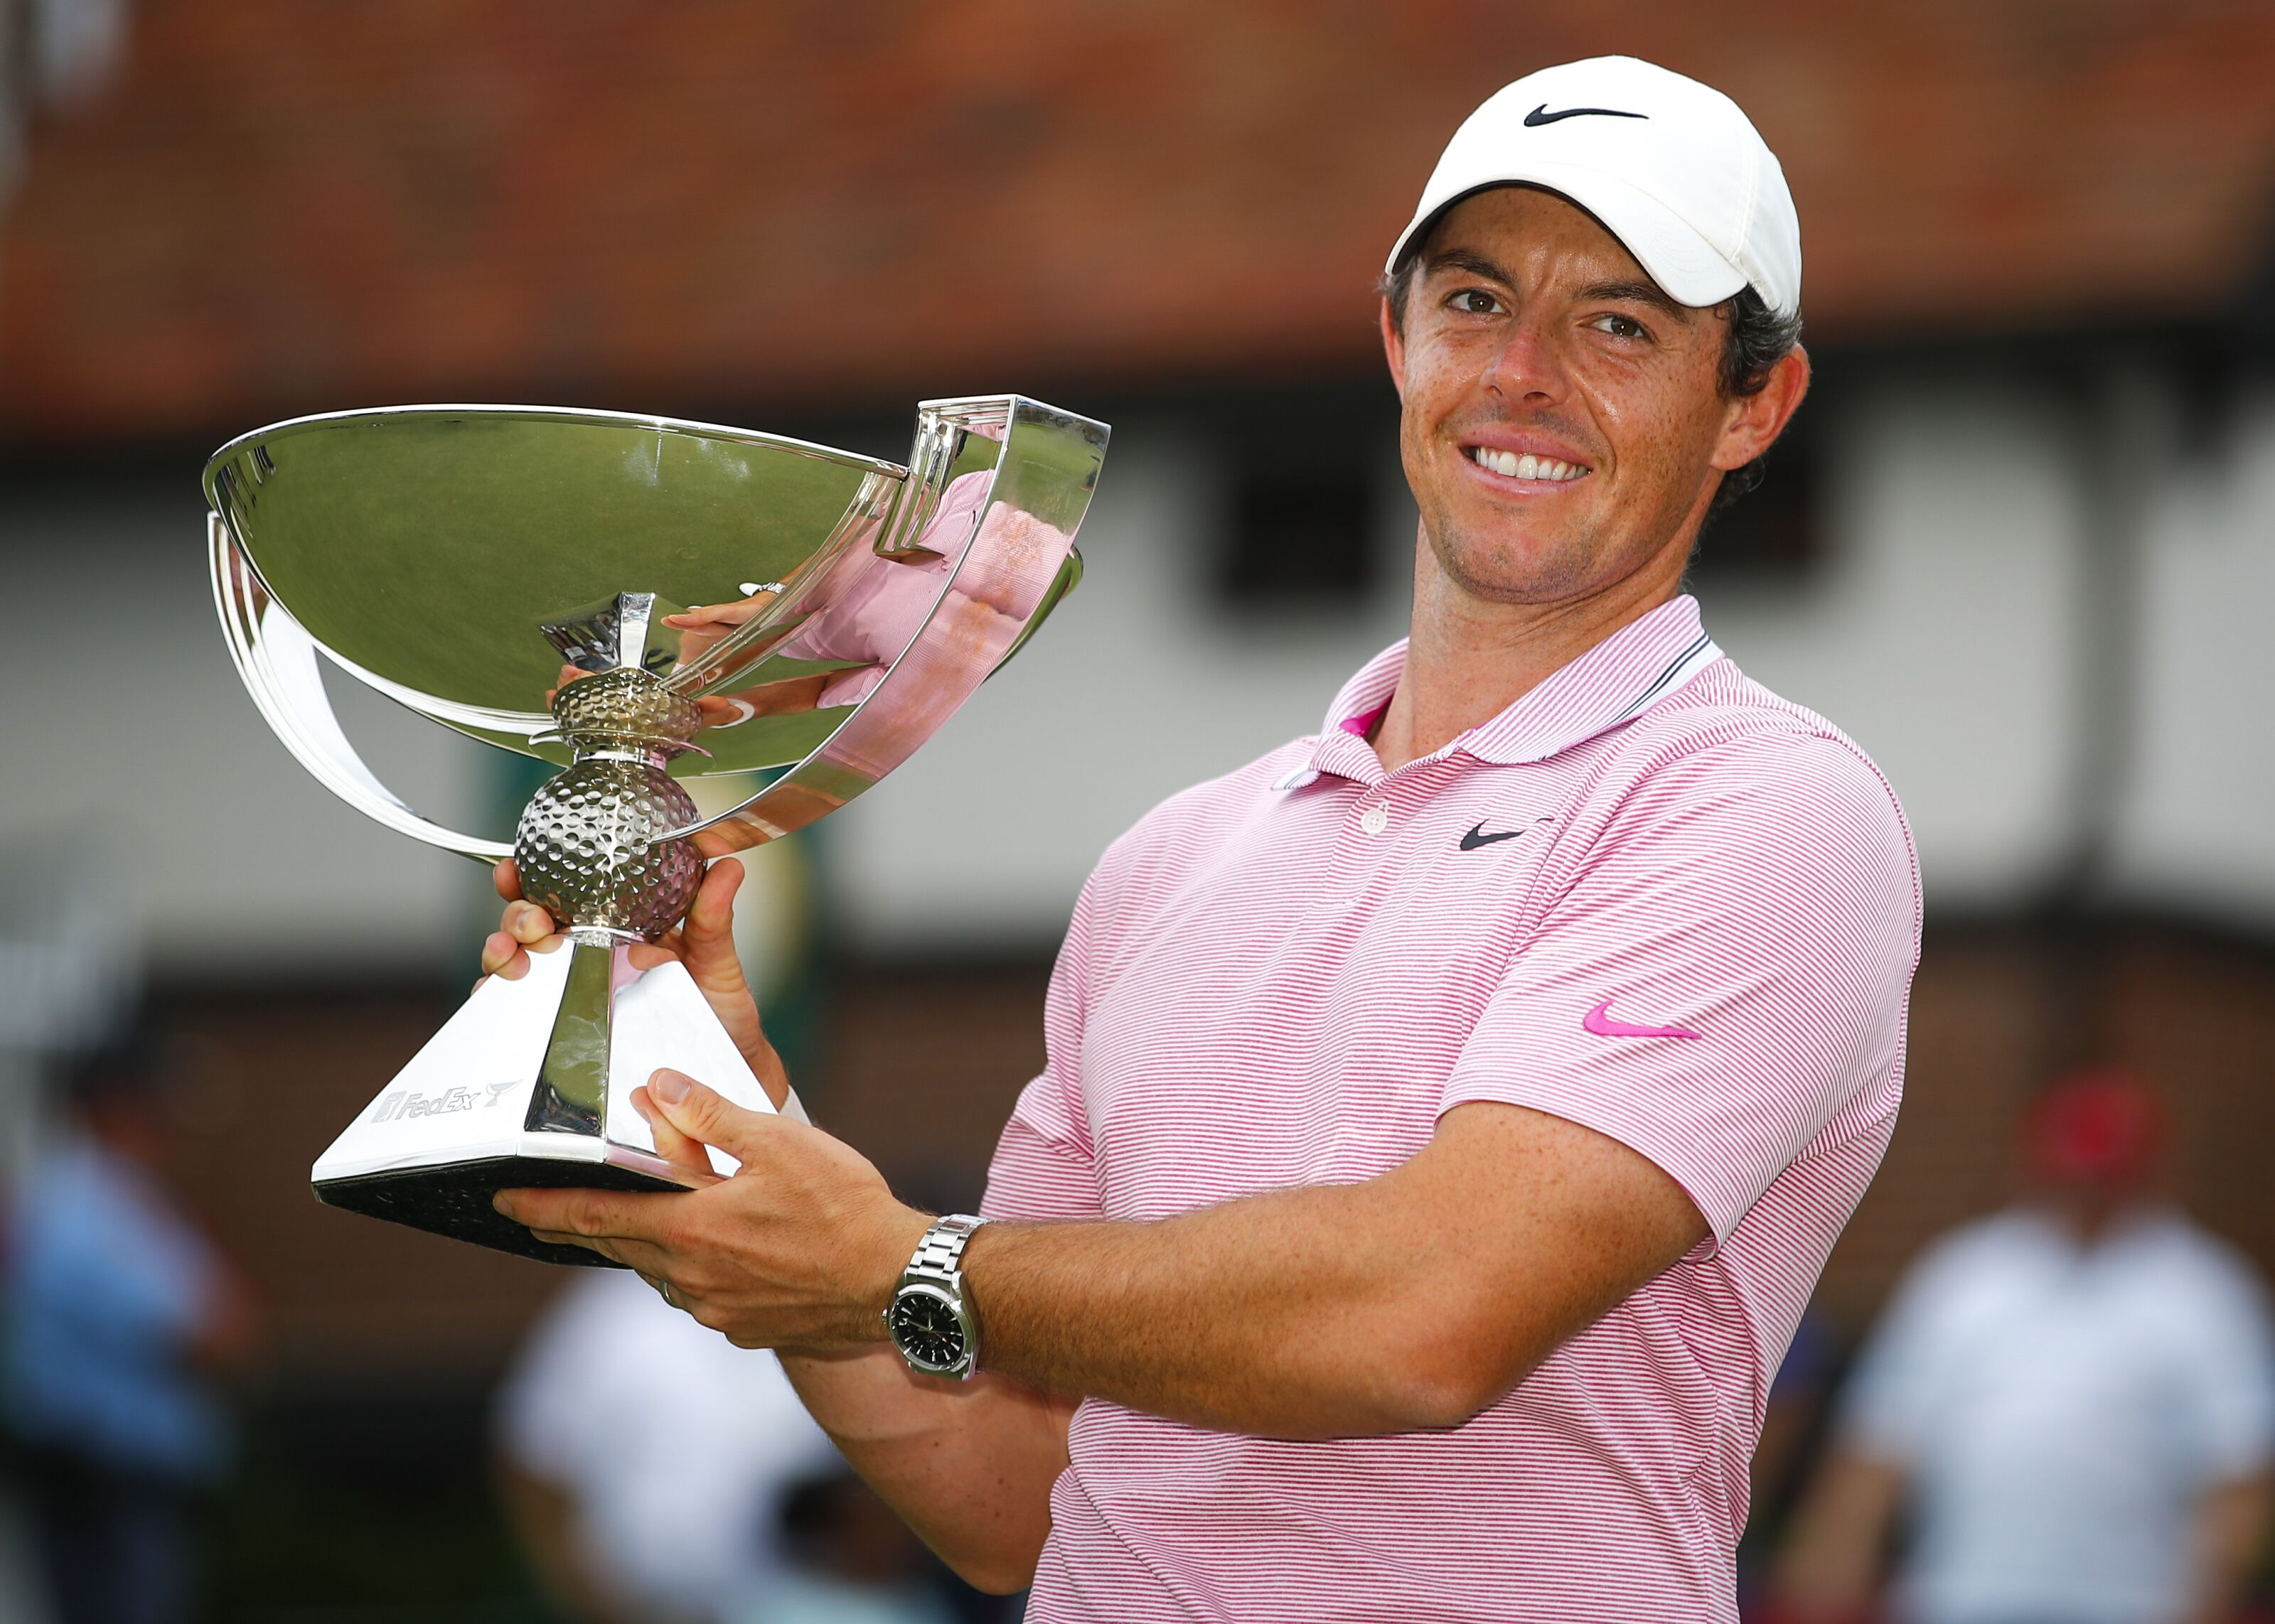 FedEx Cup champion Rory McIlroy had a season for the ages